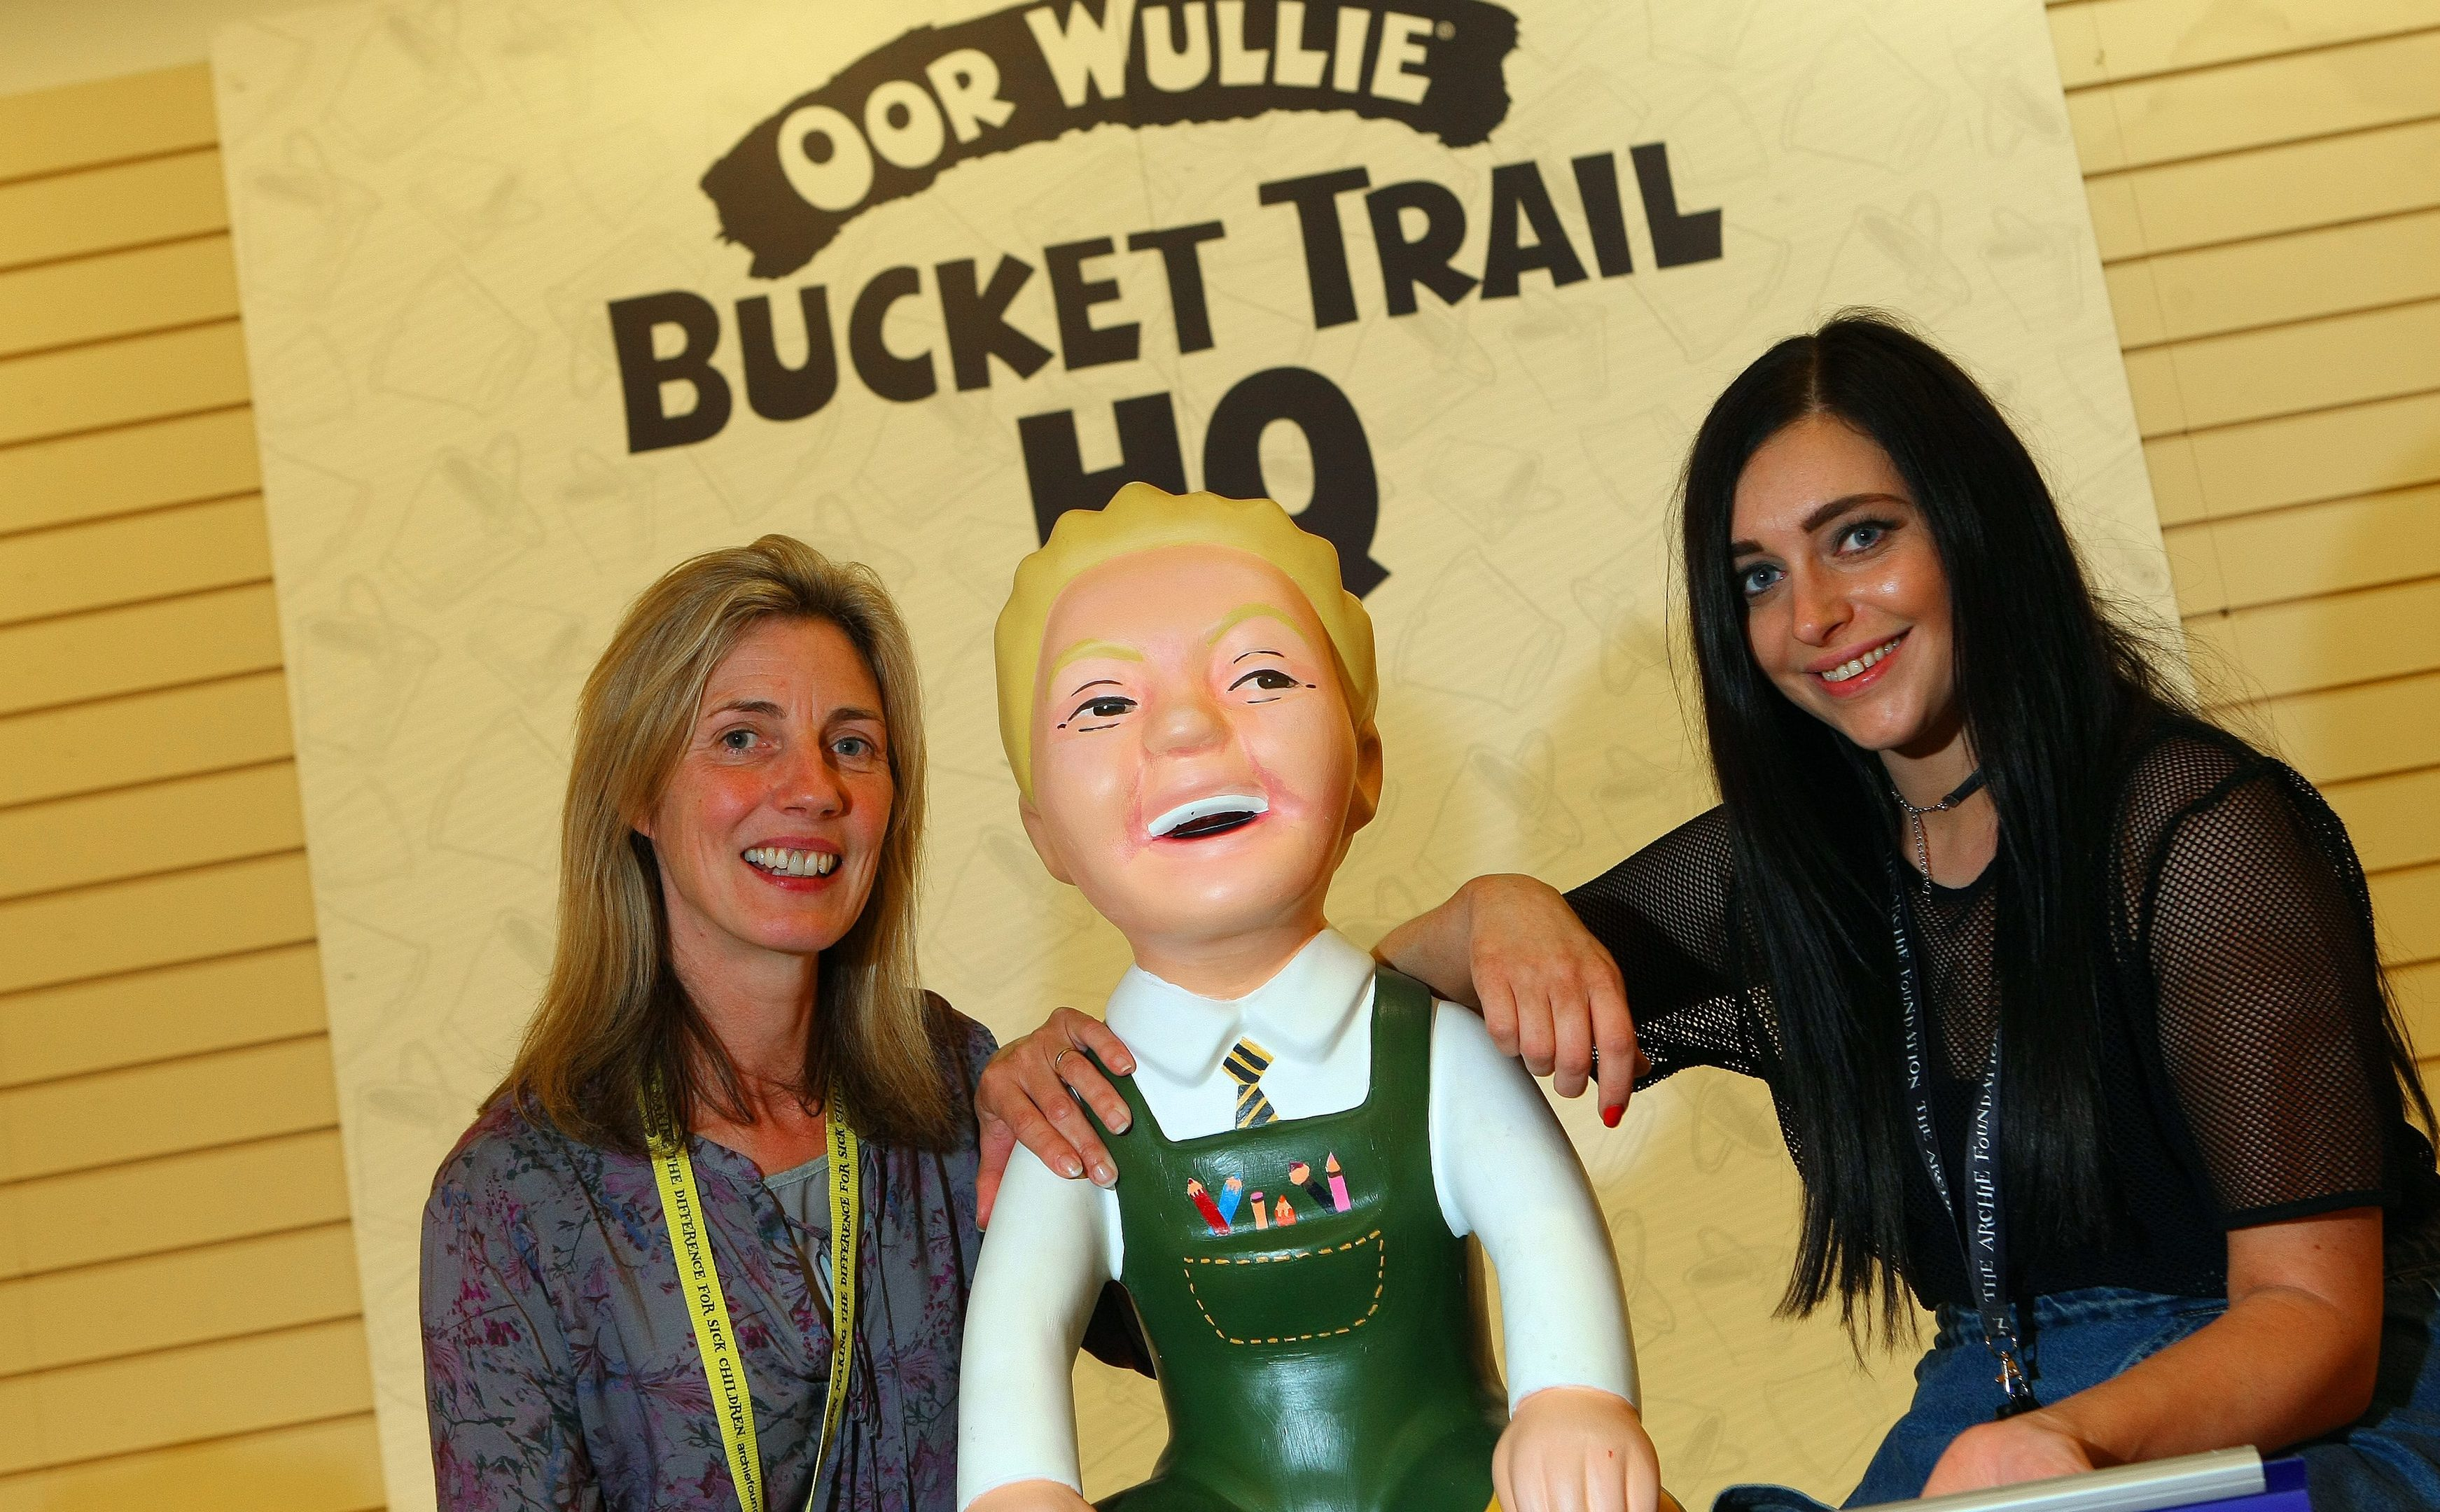 Volunteer Linda Meiklejohn and fundraising manager Hannah Clark at the Oor Wullie shop.